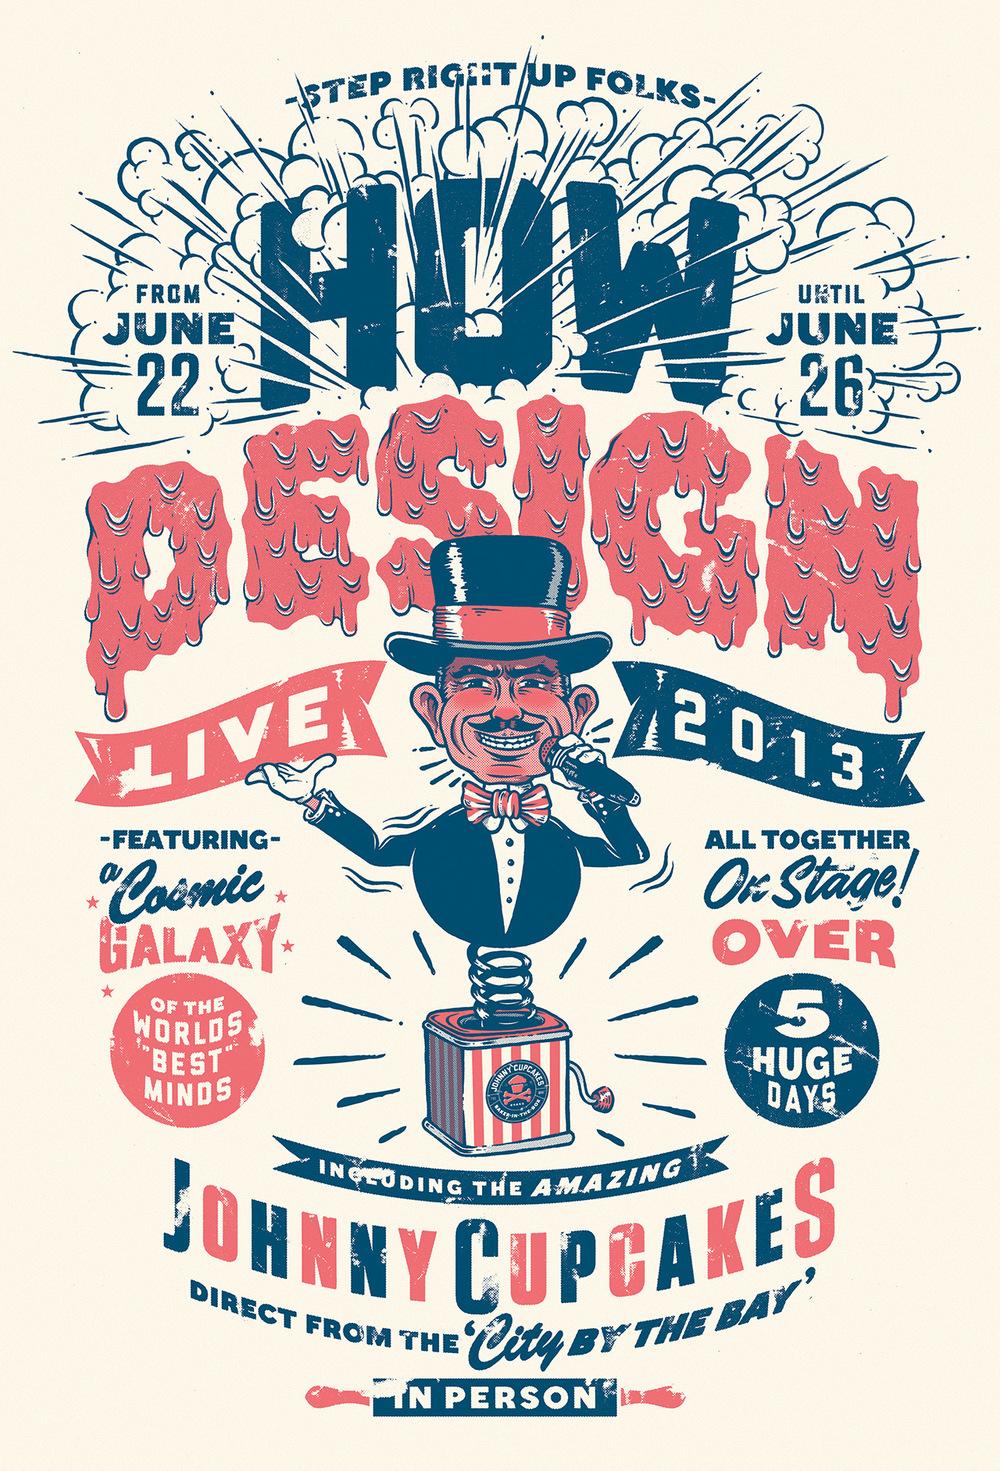 TS_JOHNNYCUPCAKES_How_Design_Live_72dpi.jpg